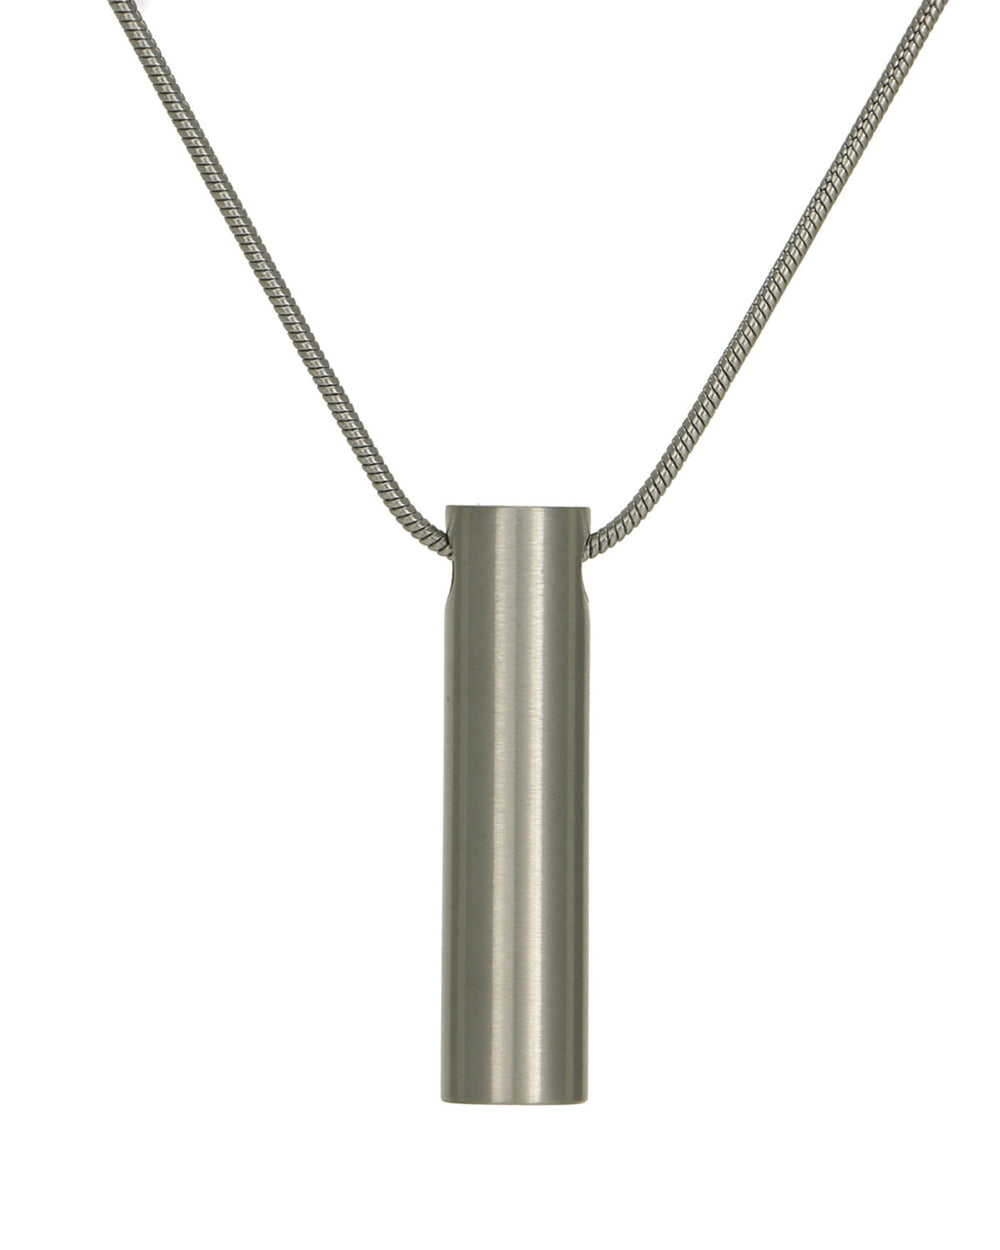 Cylinder Jewelry Pendant - Pewter